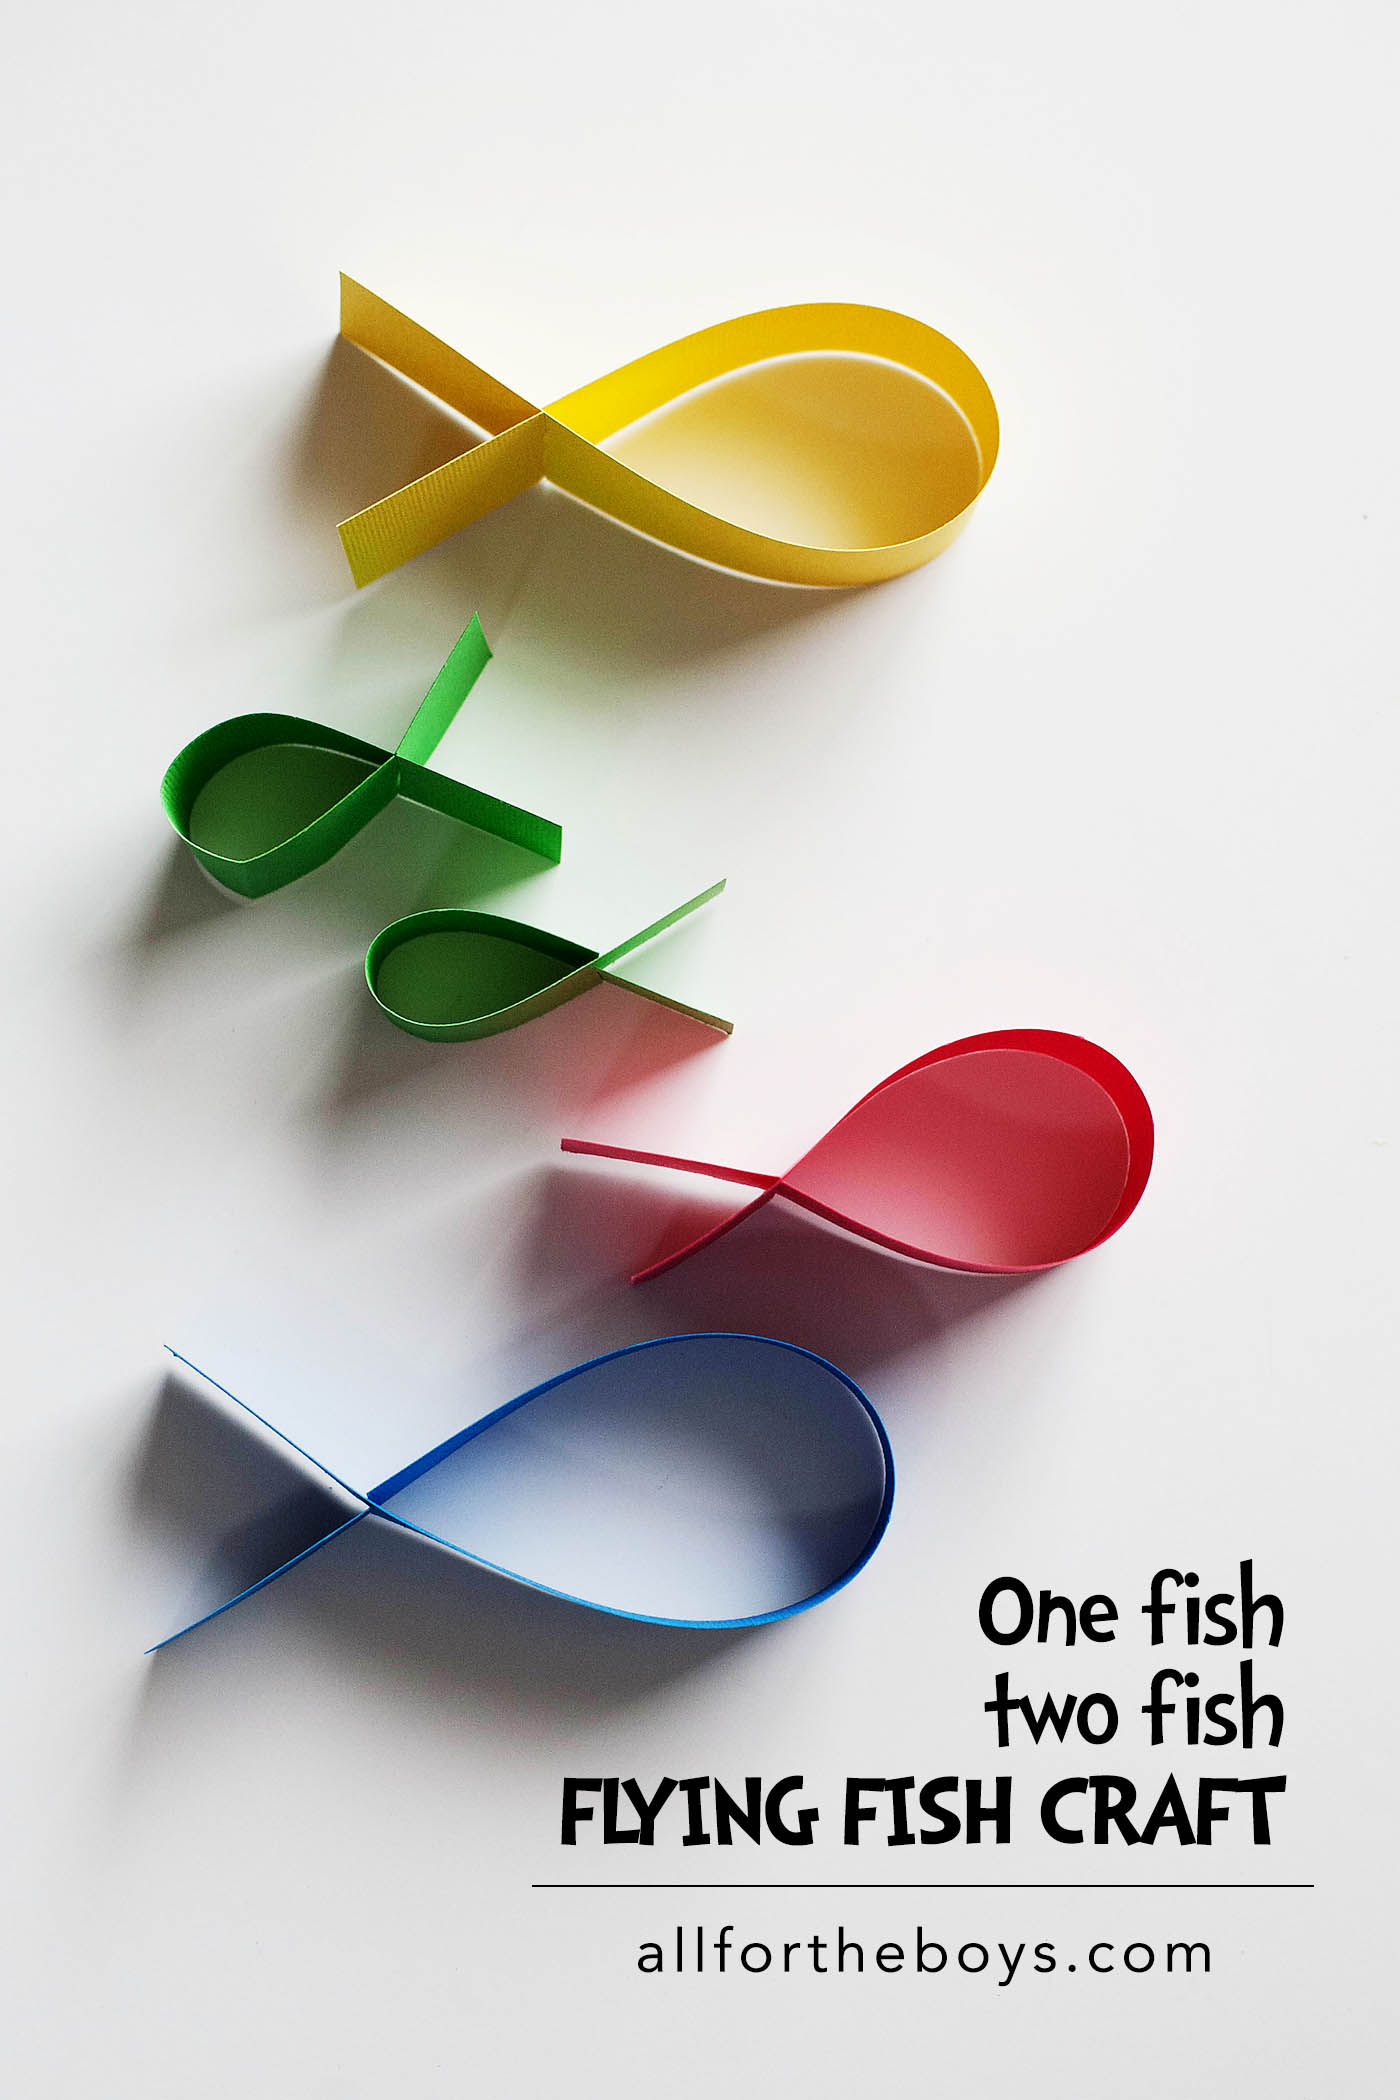 Dr. Sues one fish two fish craft